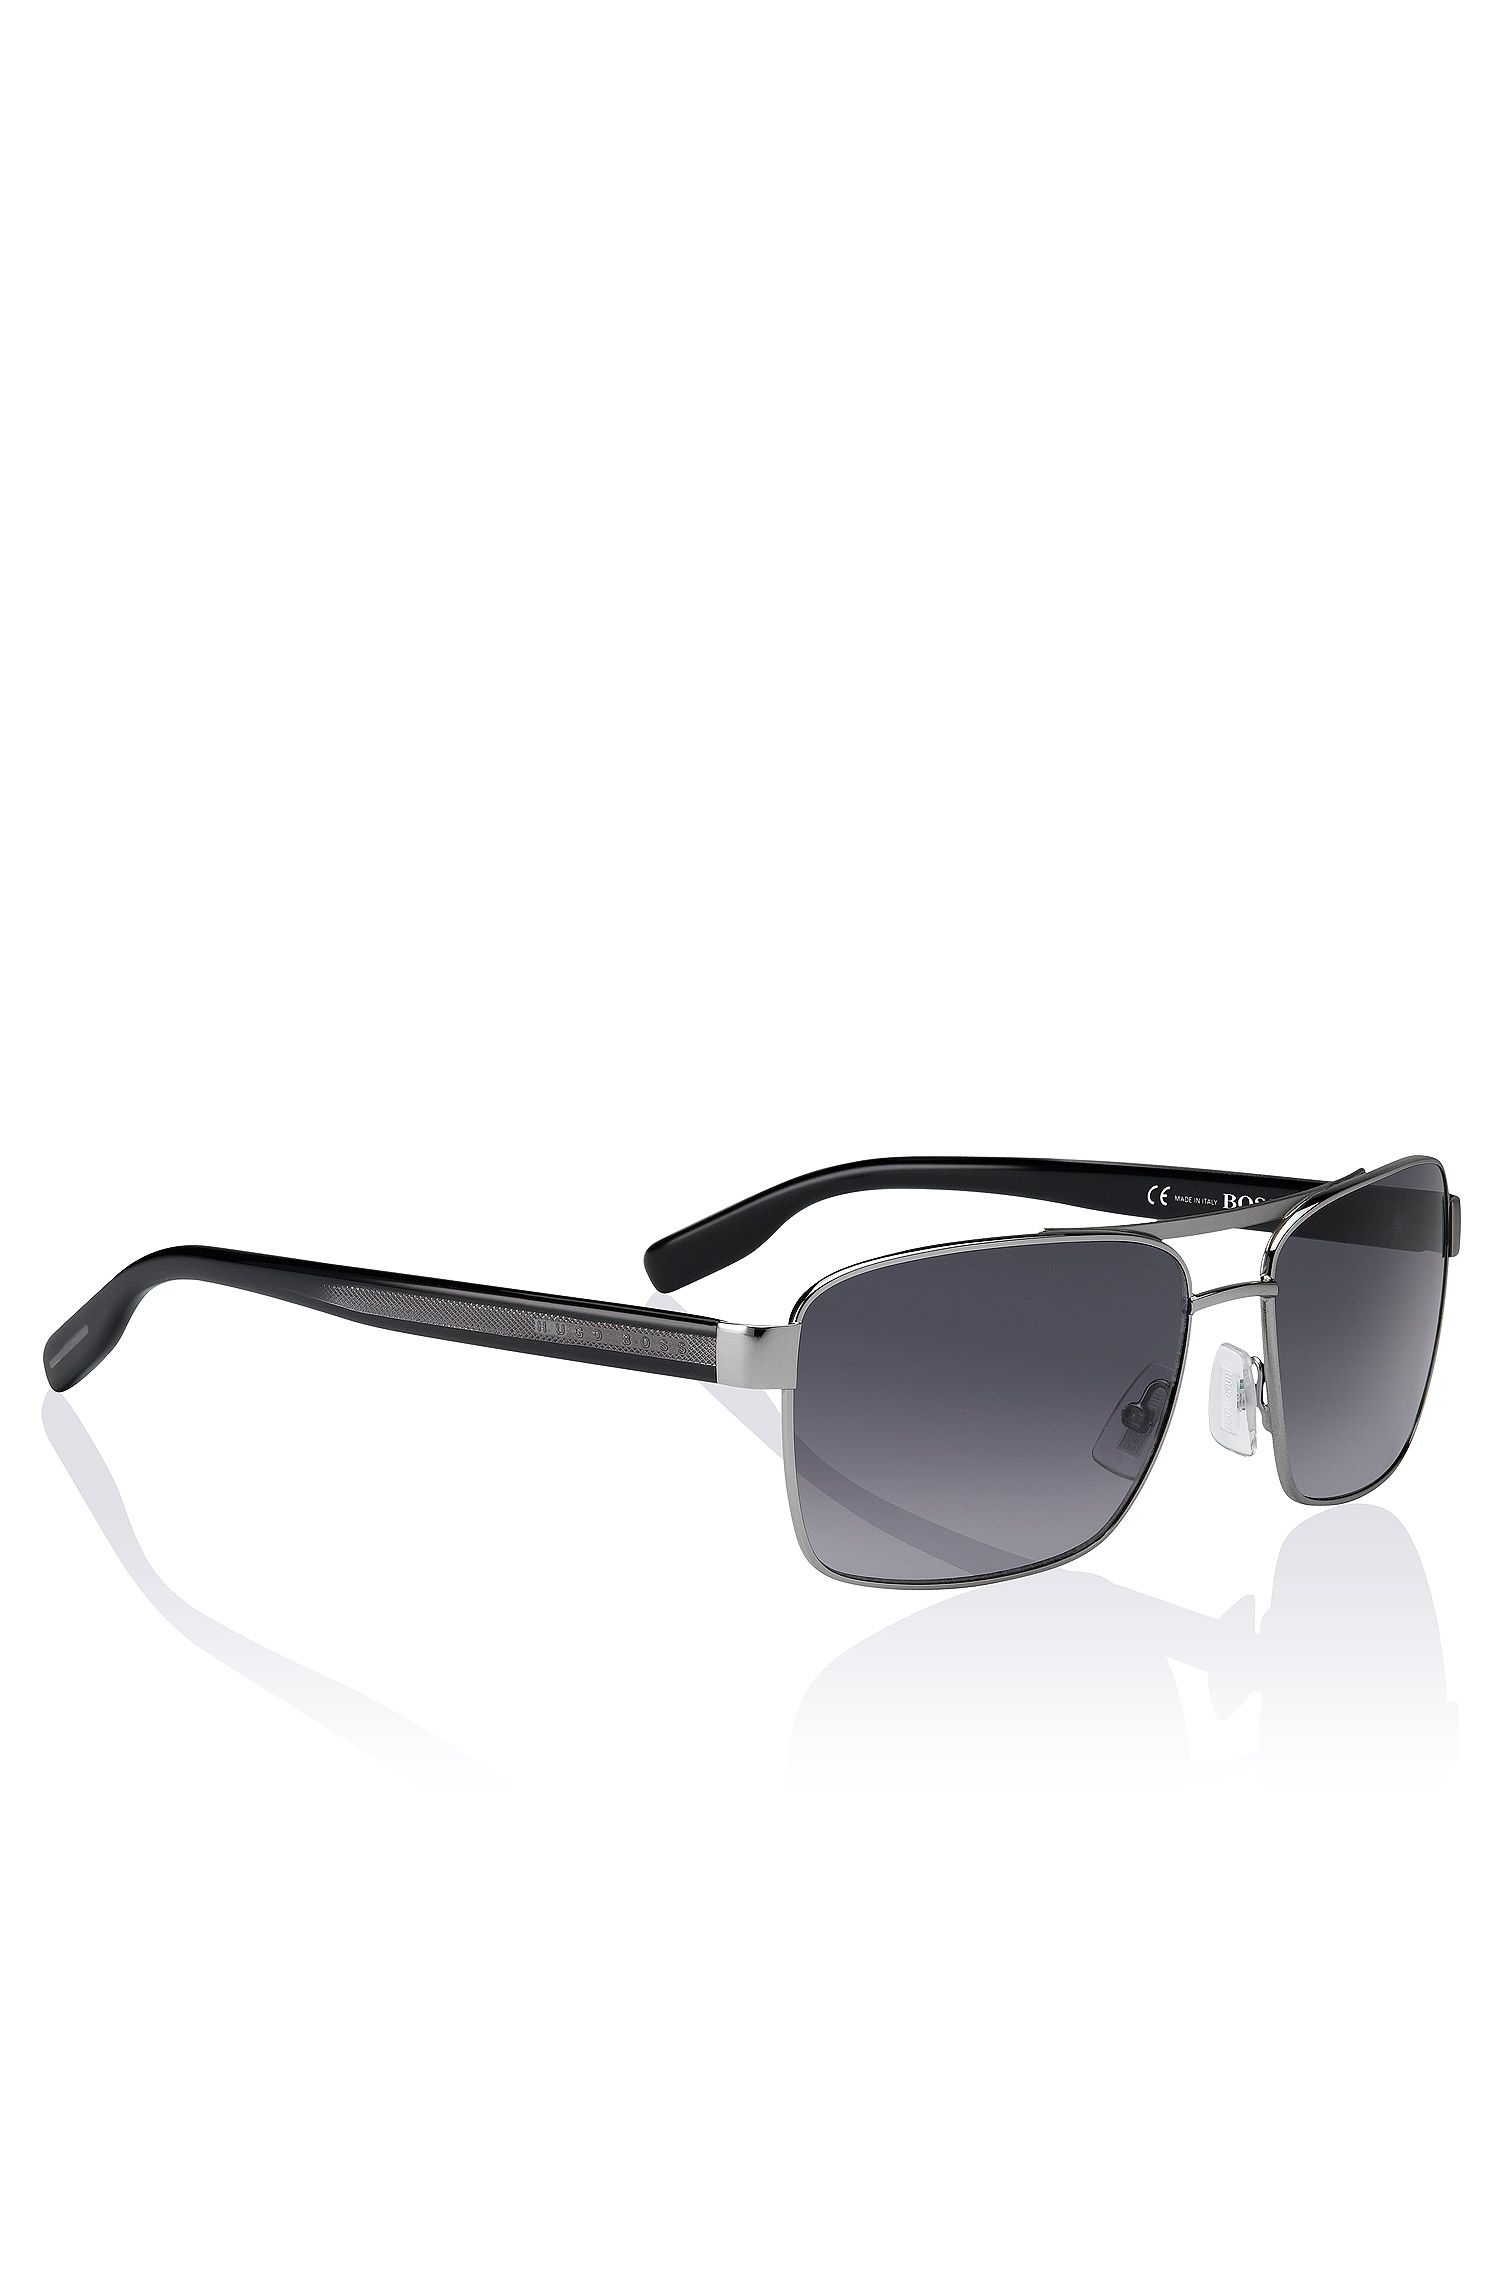 Sunglasses 'BOSS 0592/S'